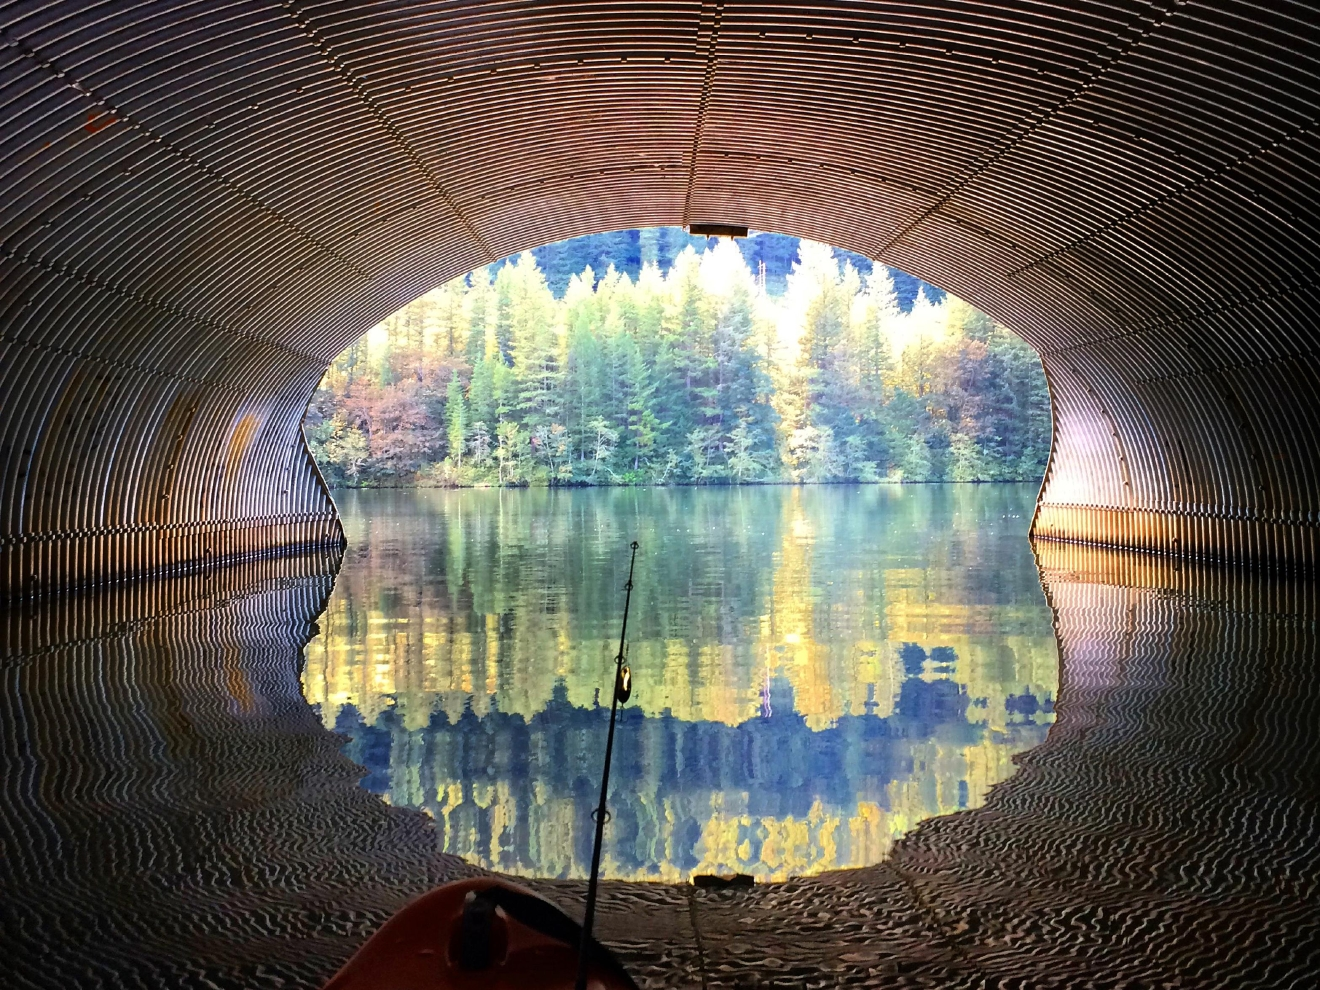 Culvert connecting North Fork Clackamas River to North Fork Reservoir (David Campbell/CC by 2.0)